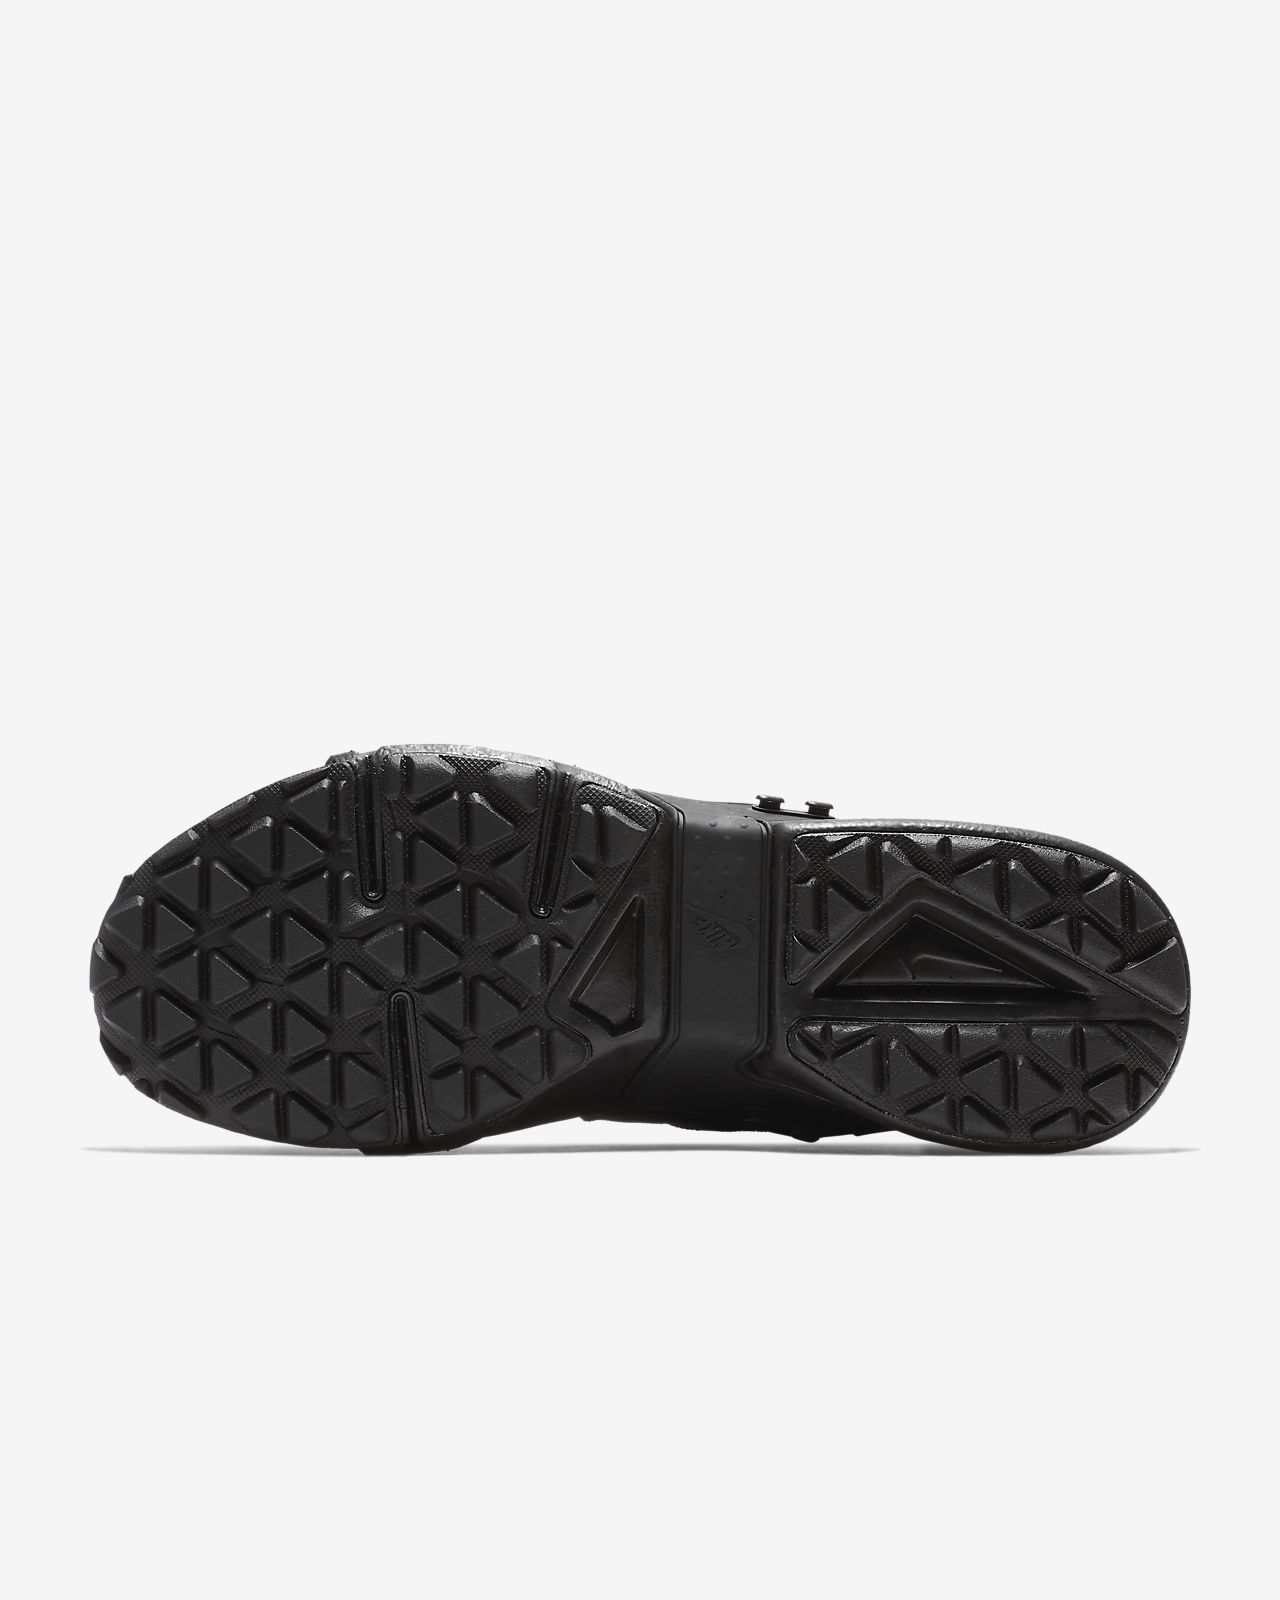 save off 86326 80886 ... Nike Air Huarache Gripp Men s Shoe